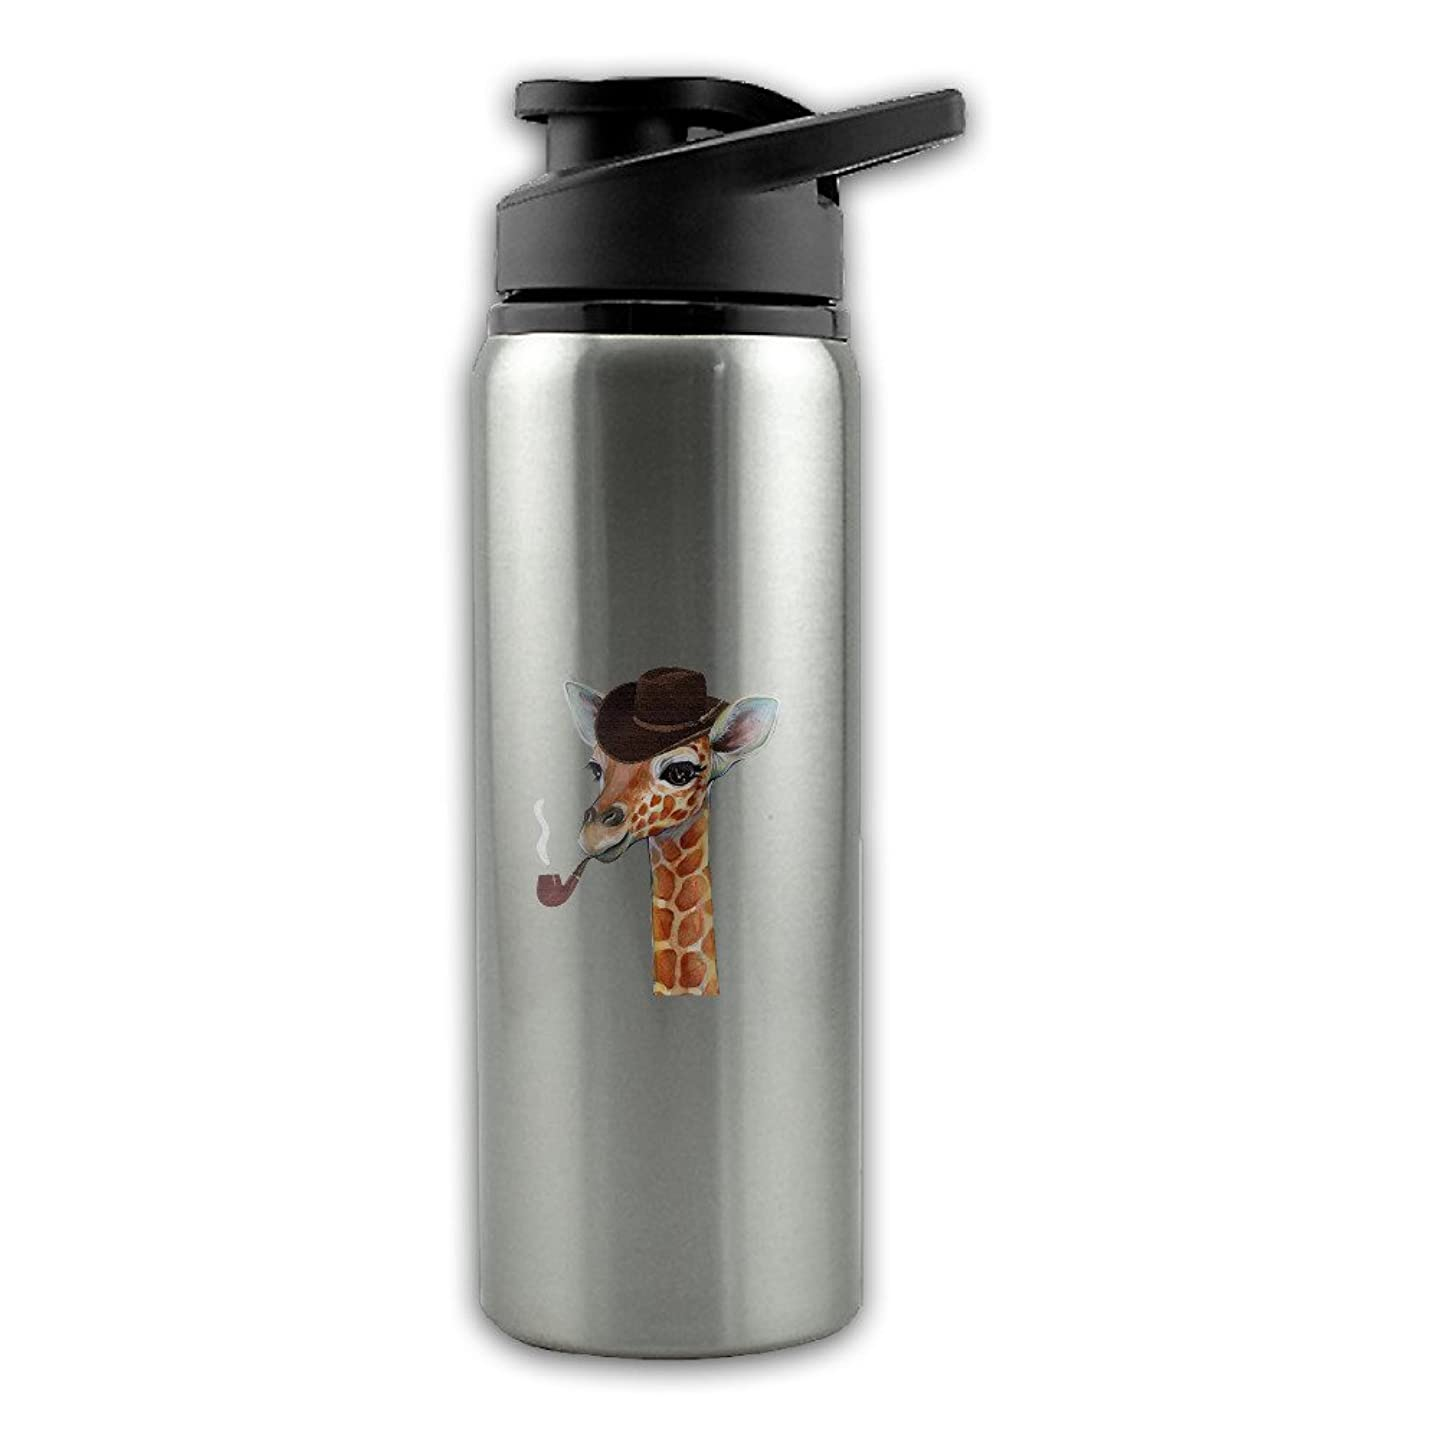 Pipe Giraffe With A Cowboy Hat Stainless Steel Layer Sports Water Bottle With Wide Mouth 24oz